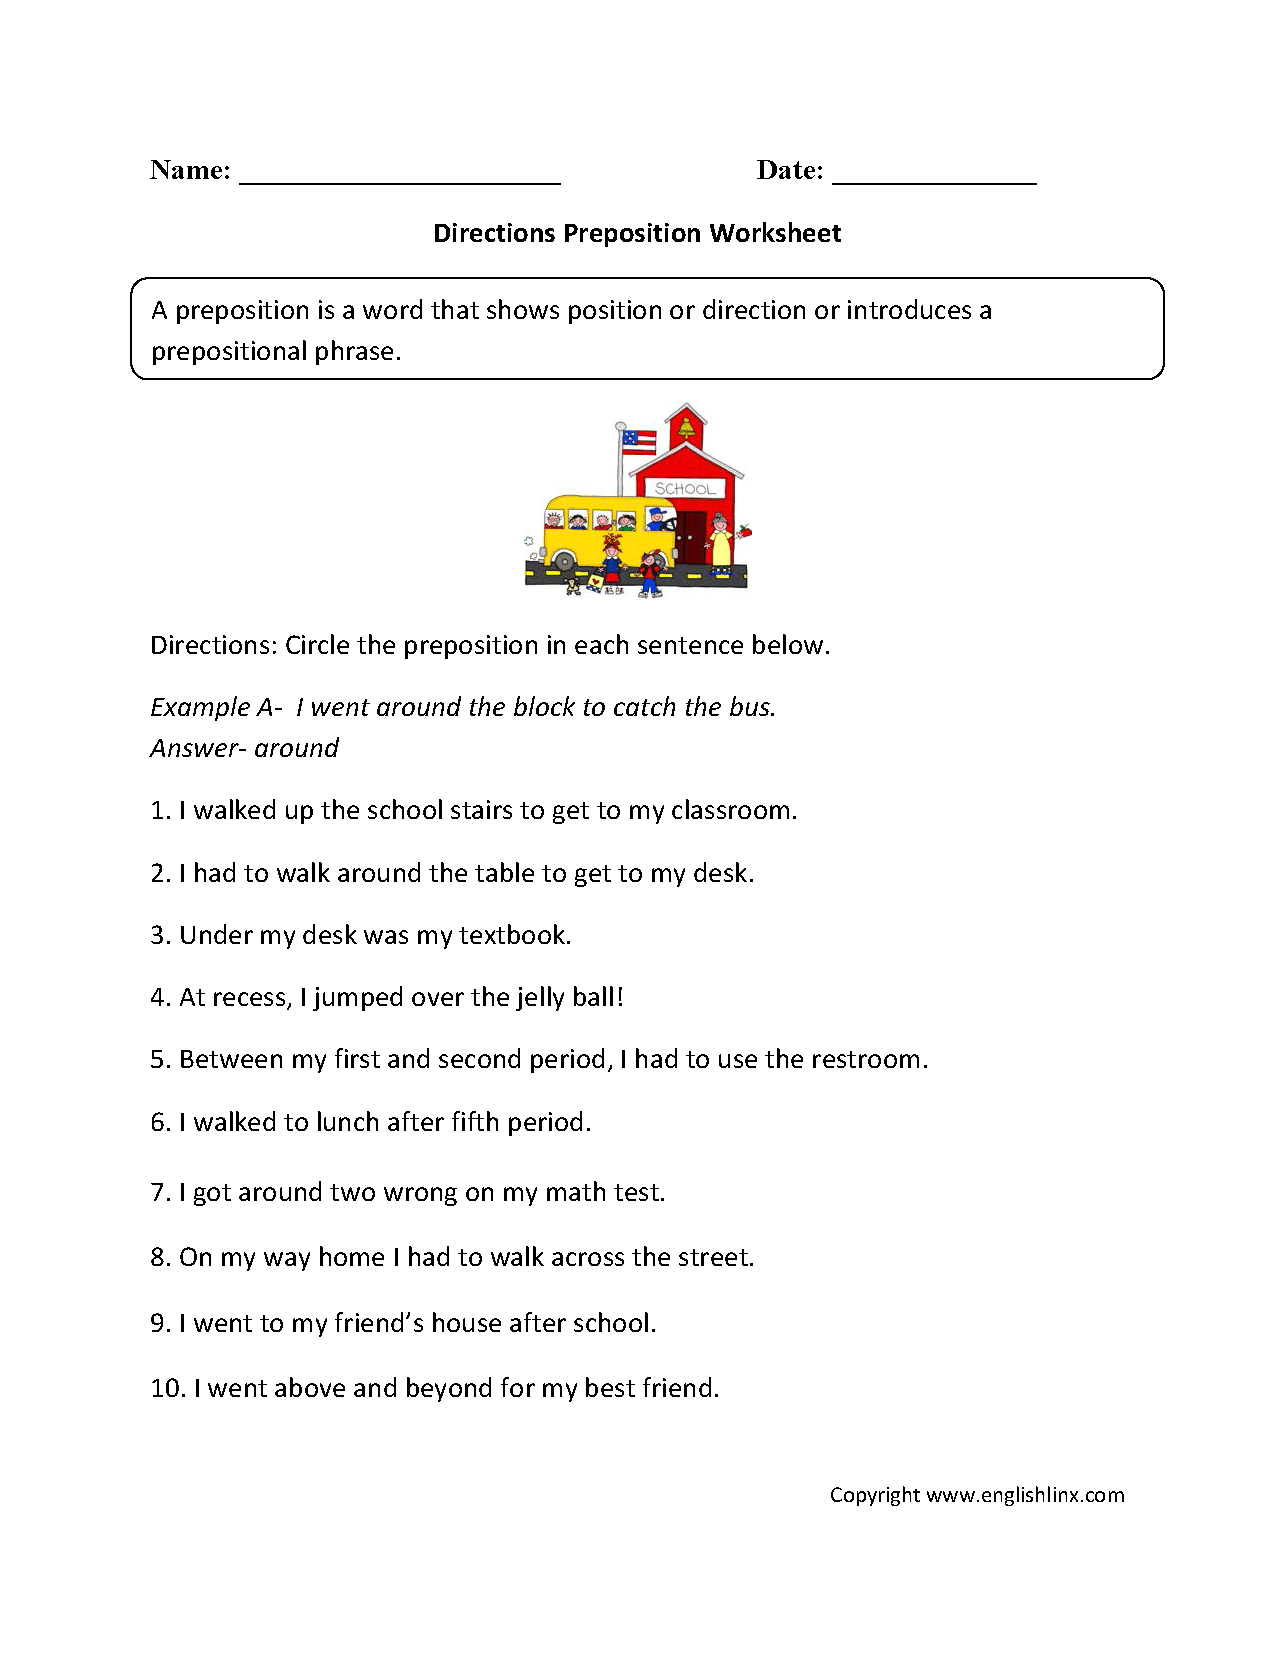 Worksheets Prepositions Worksheets preposition worksheets teach pinterest prepositions worksheets